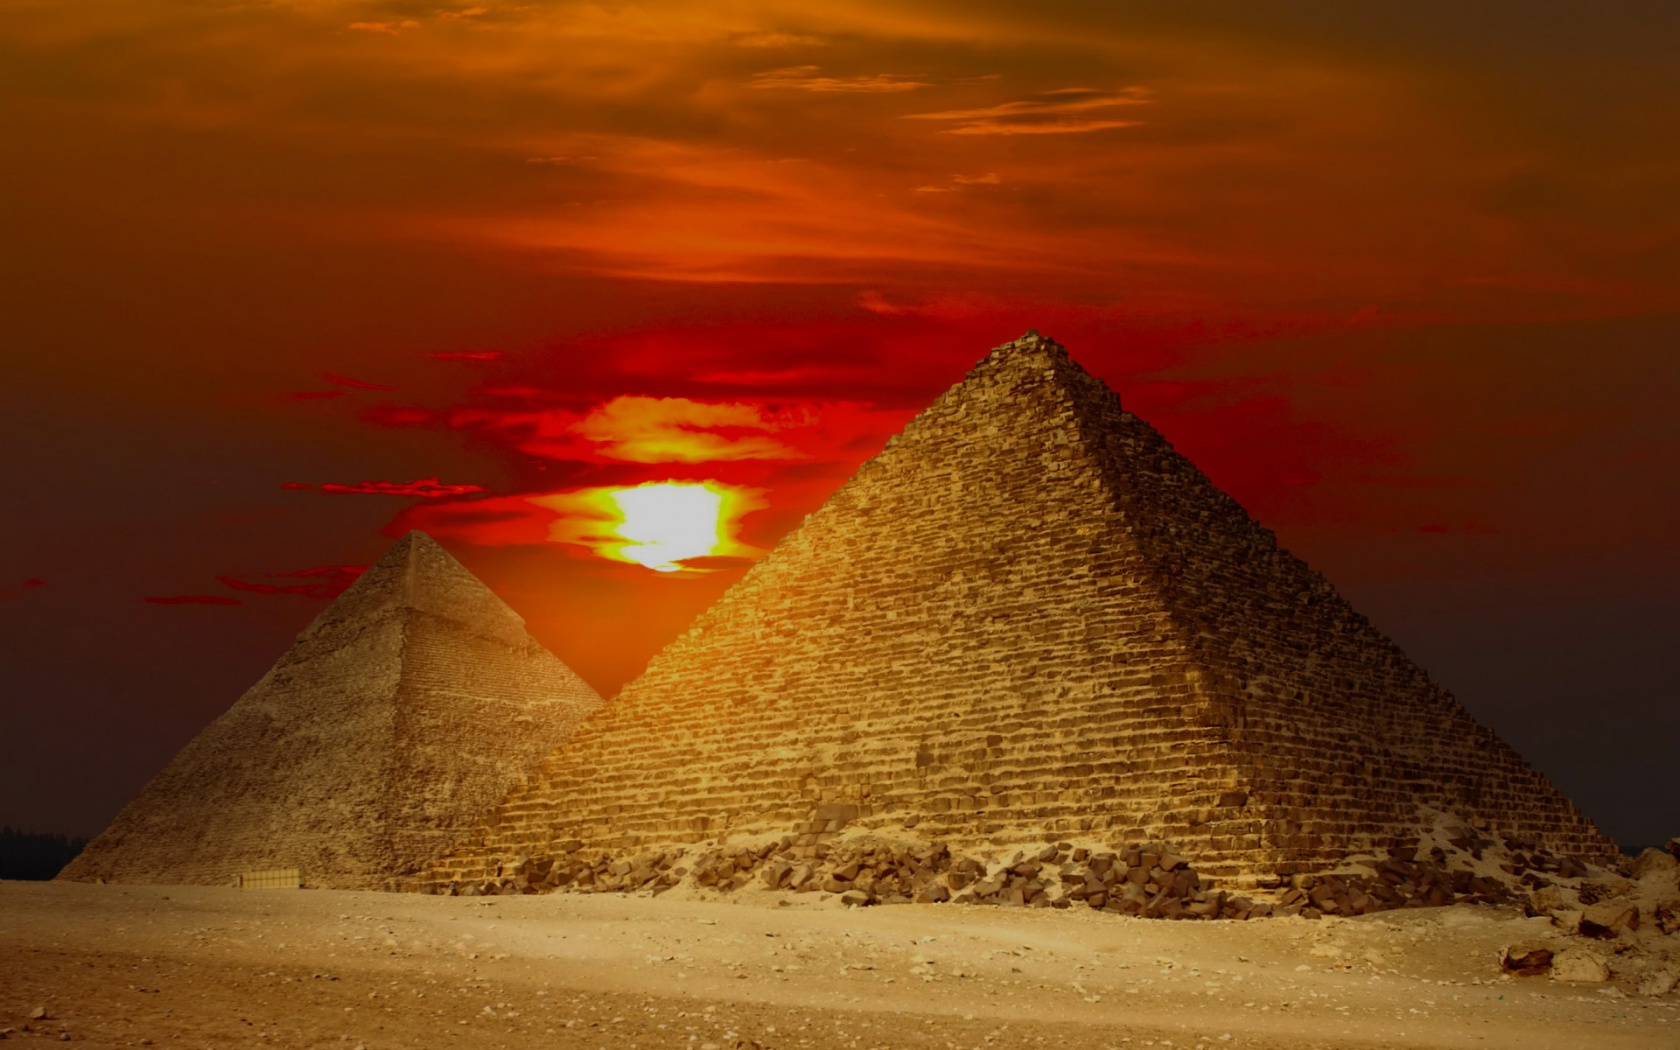 1680x1050 Giza Pyramids Egypt Red Sunset